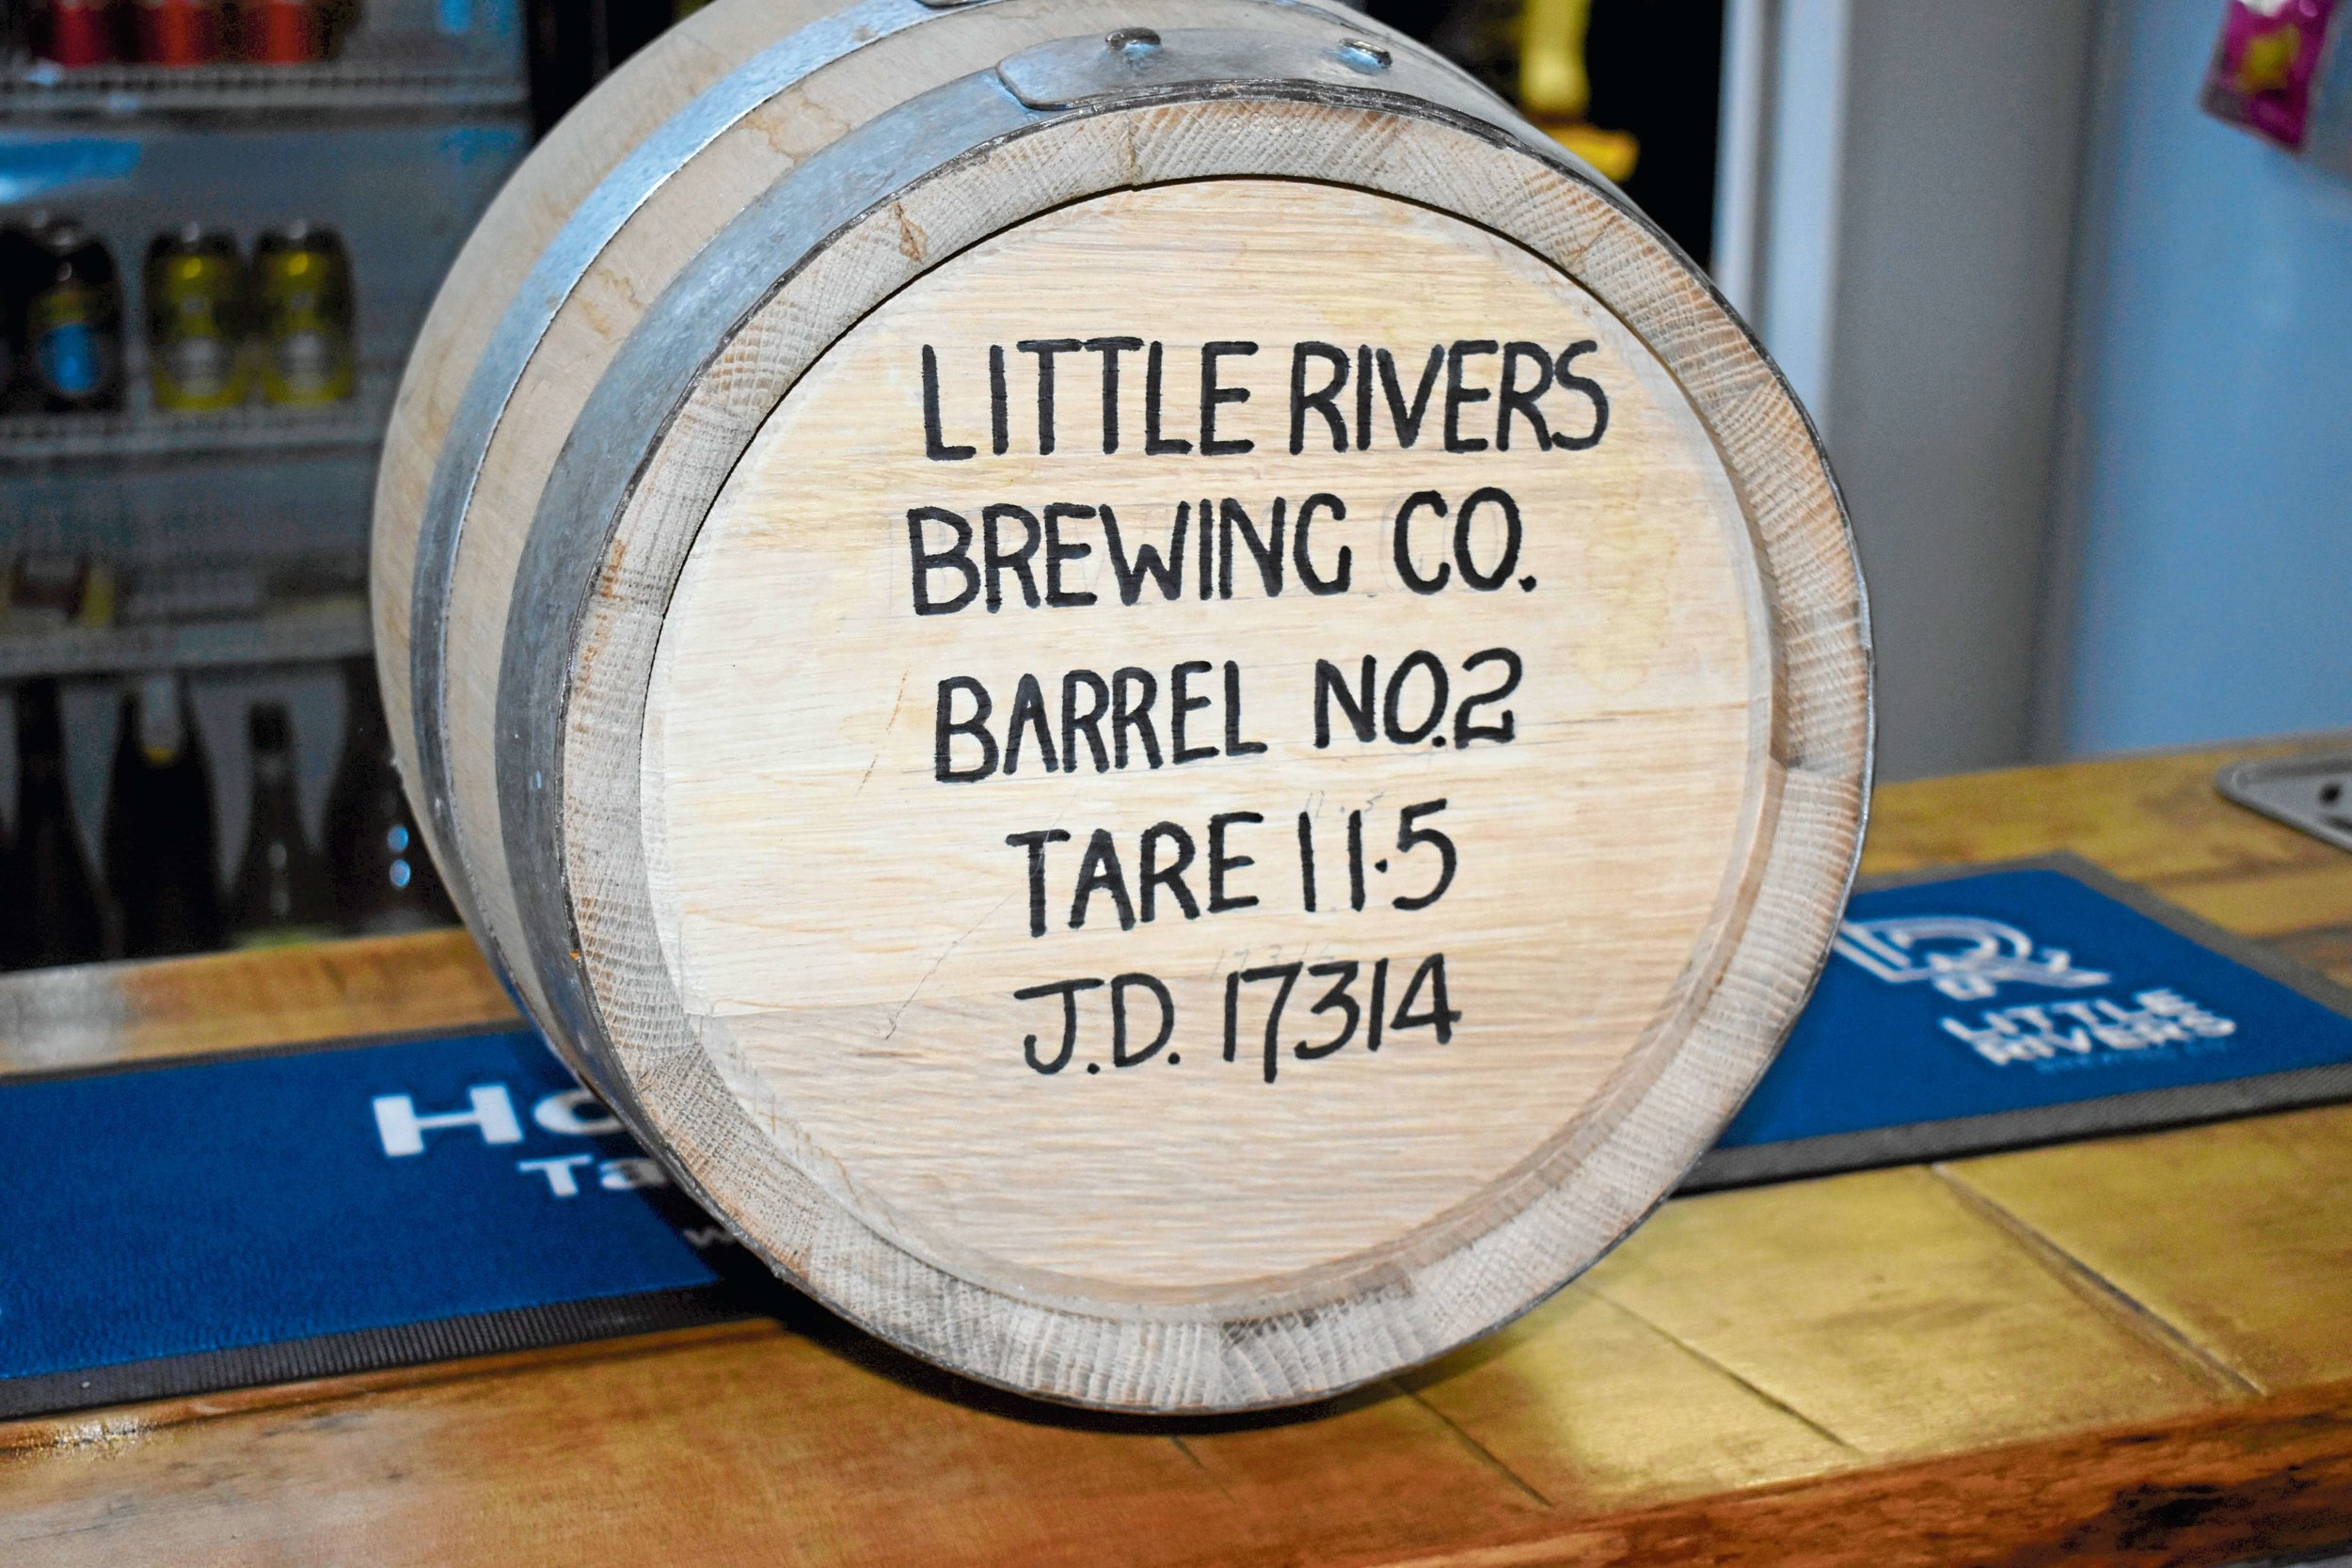 • In September Little Rivers will be releasing their own whisky label after beginning the process more than two years ago.